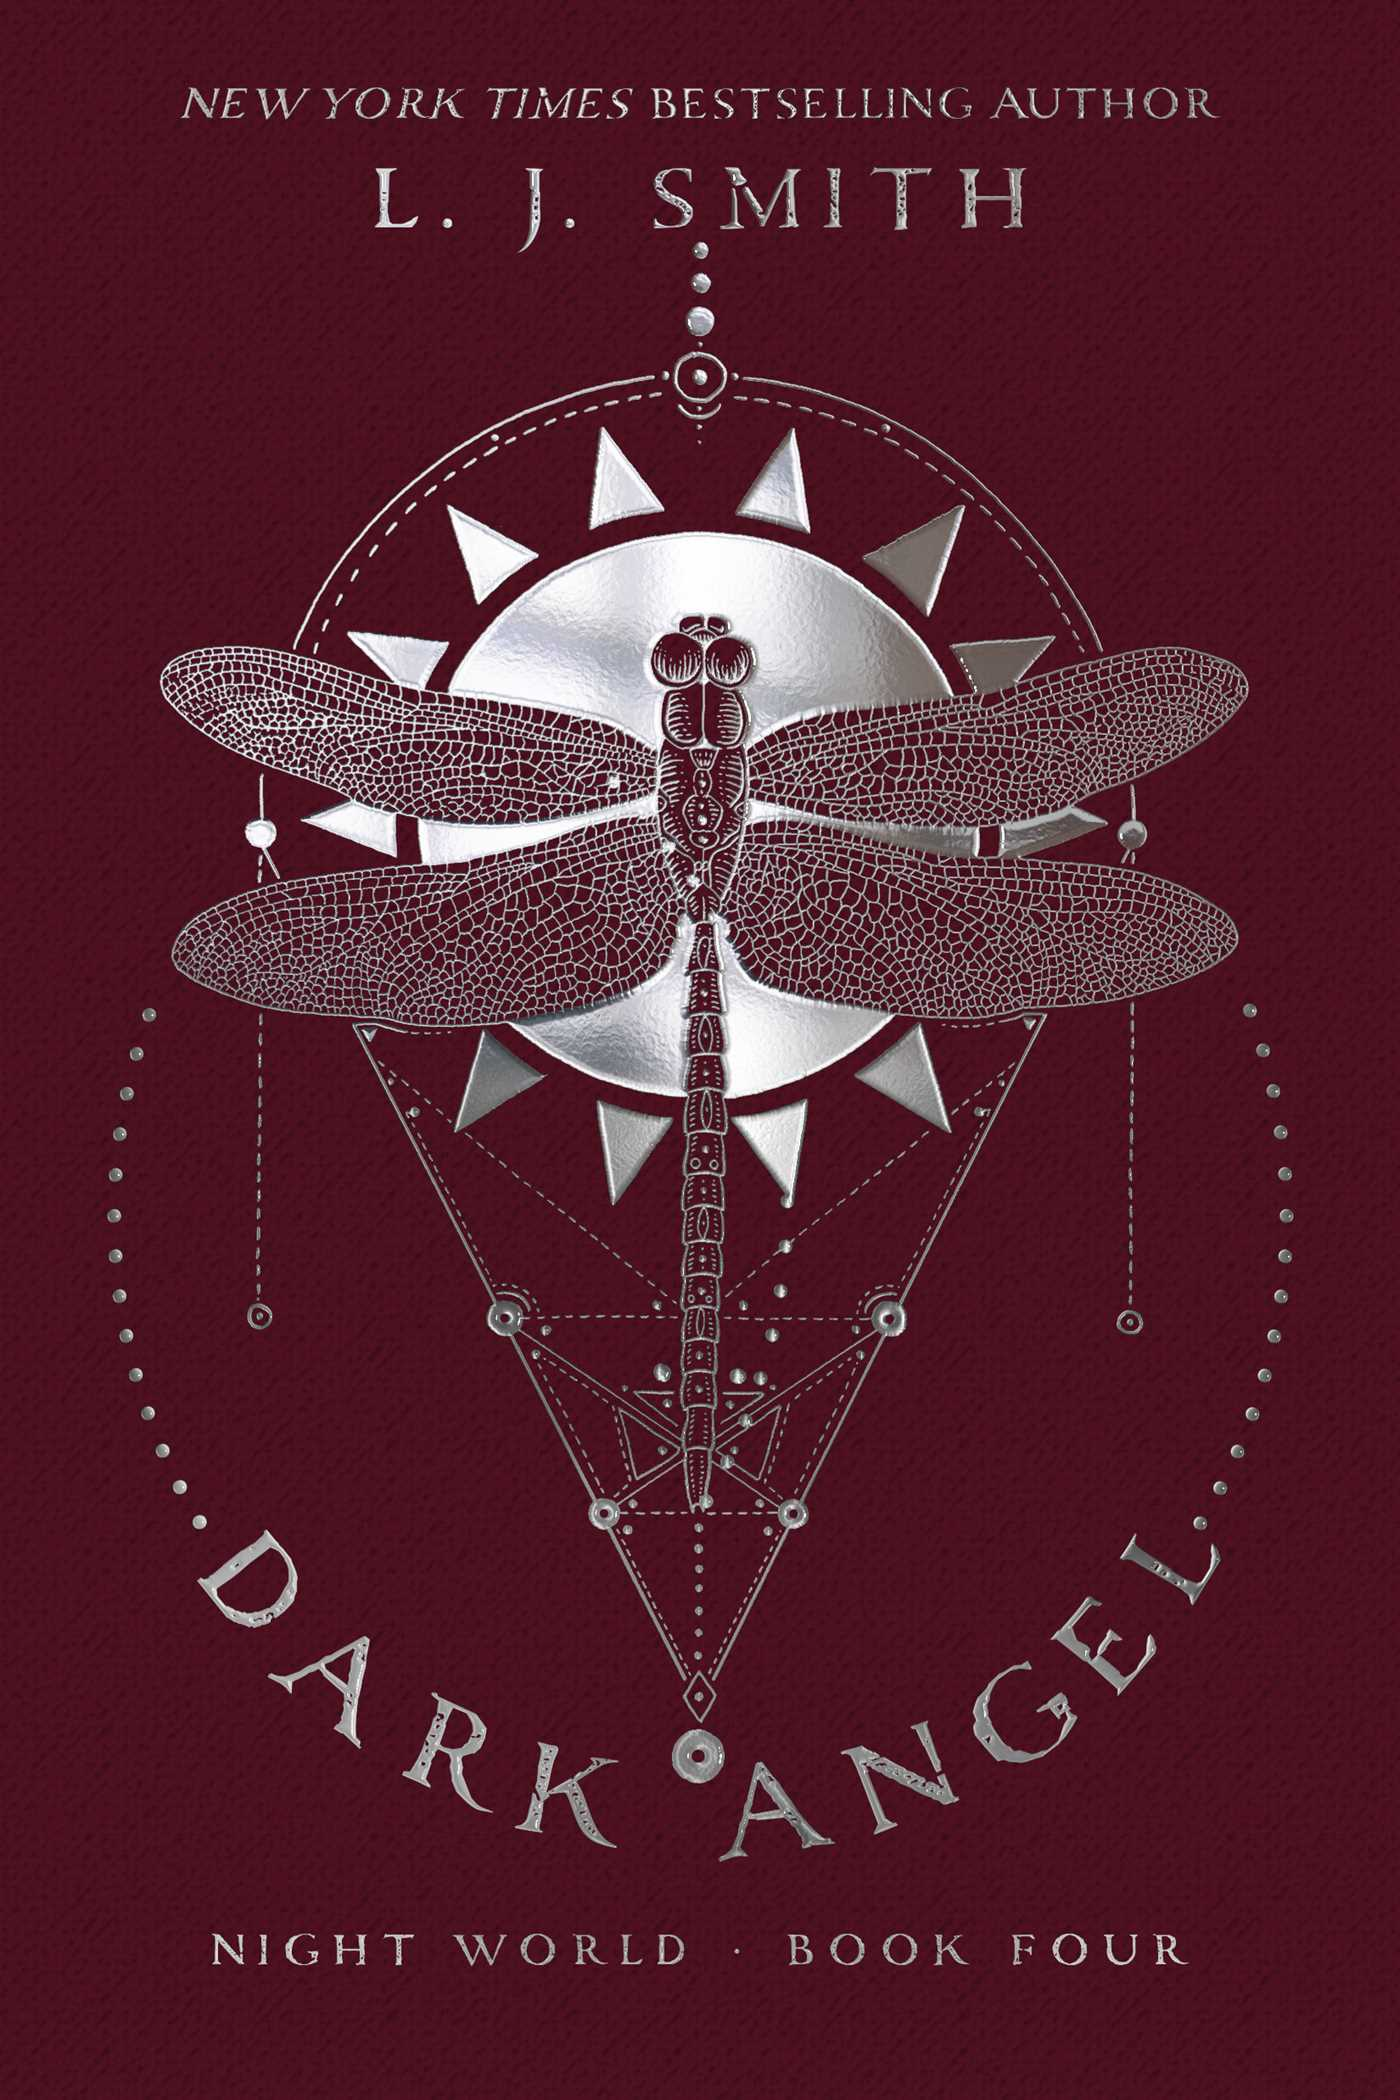 A book report on dark angel by l j smith